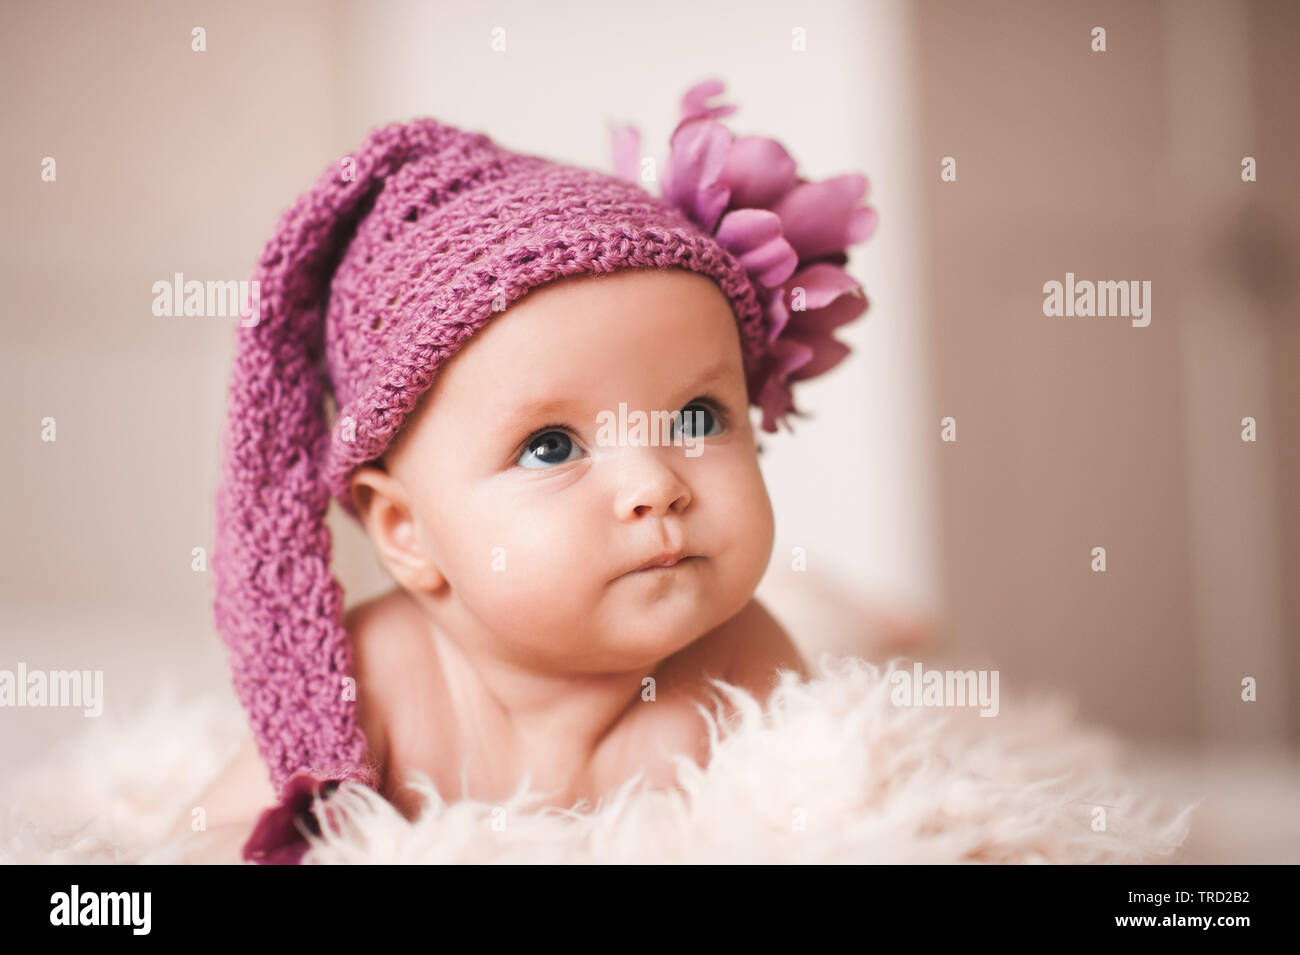 outlet los angeles buying now Funny baby girl wearing knitted hat lying in bed closeup ...